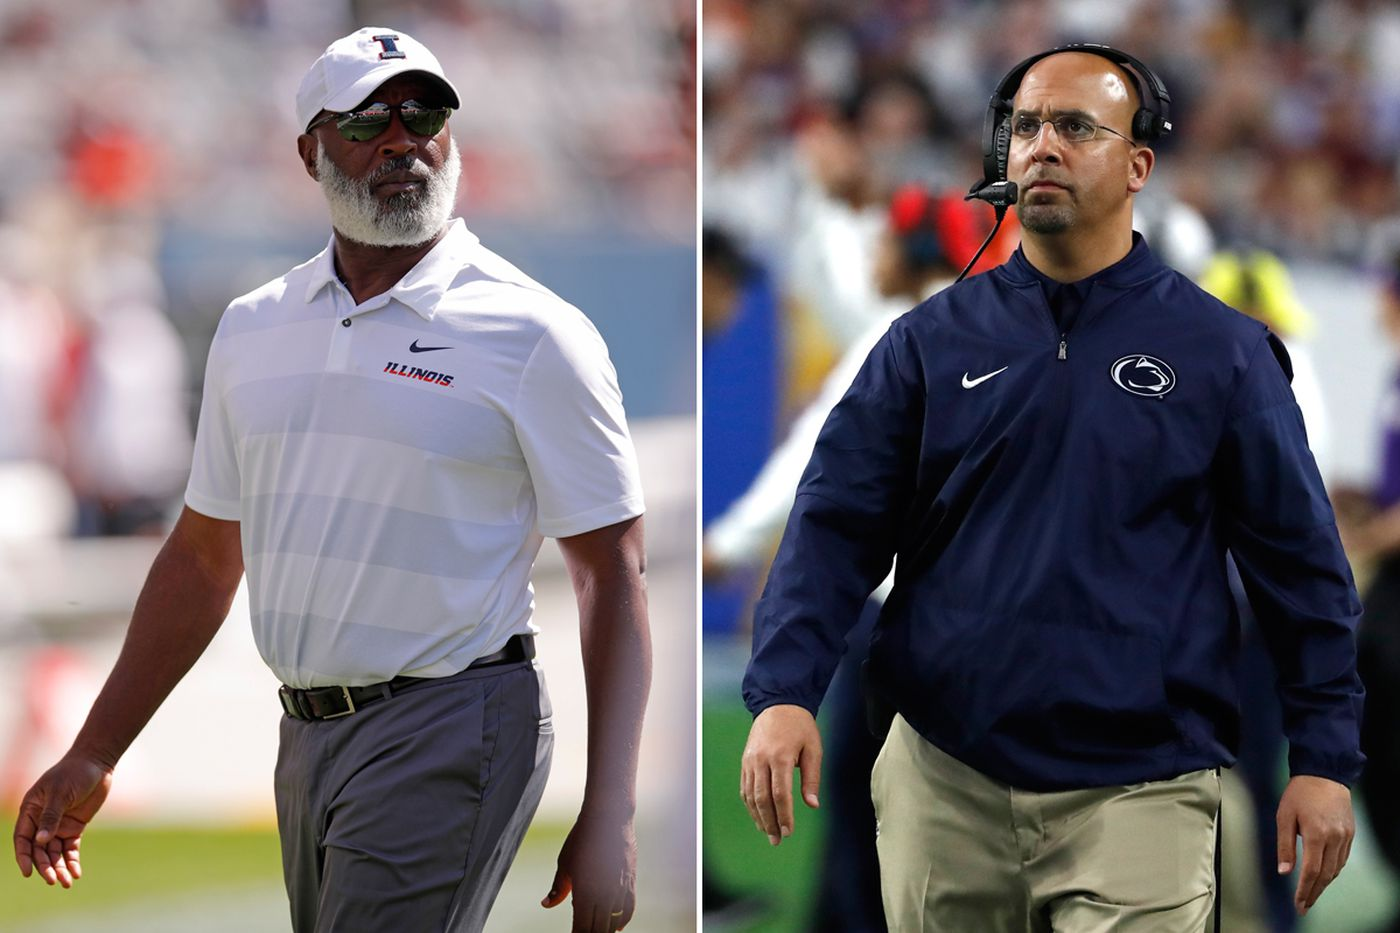 Penn State's James Franklin looks forward to matchup of Big Ten's two African American head coaches